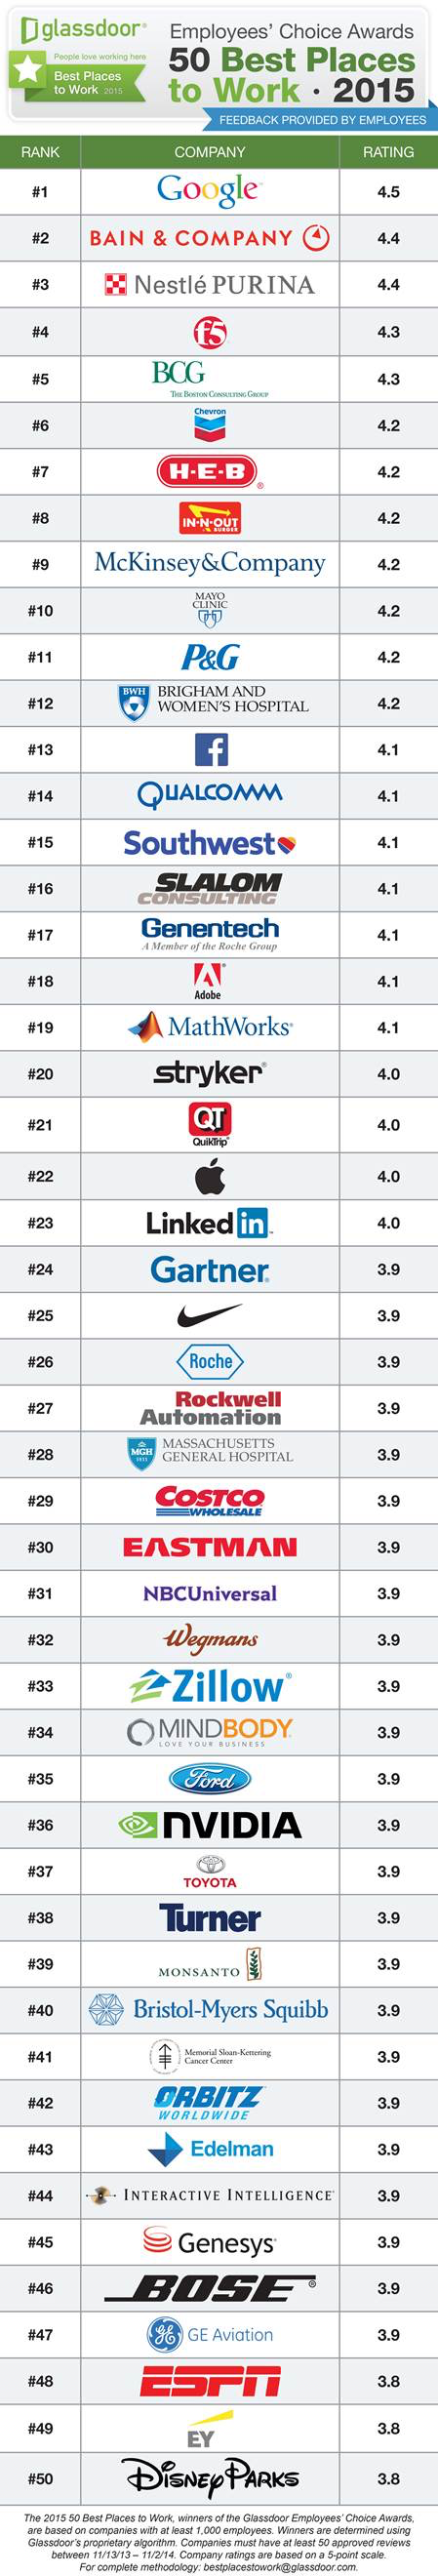 Hottest Place to Work in 2015